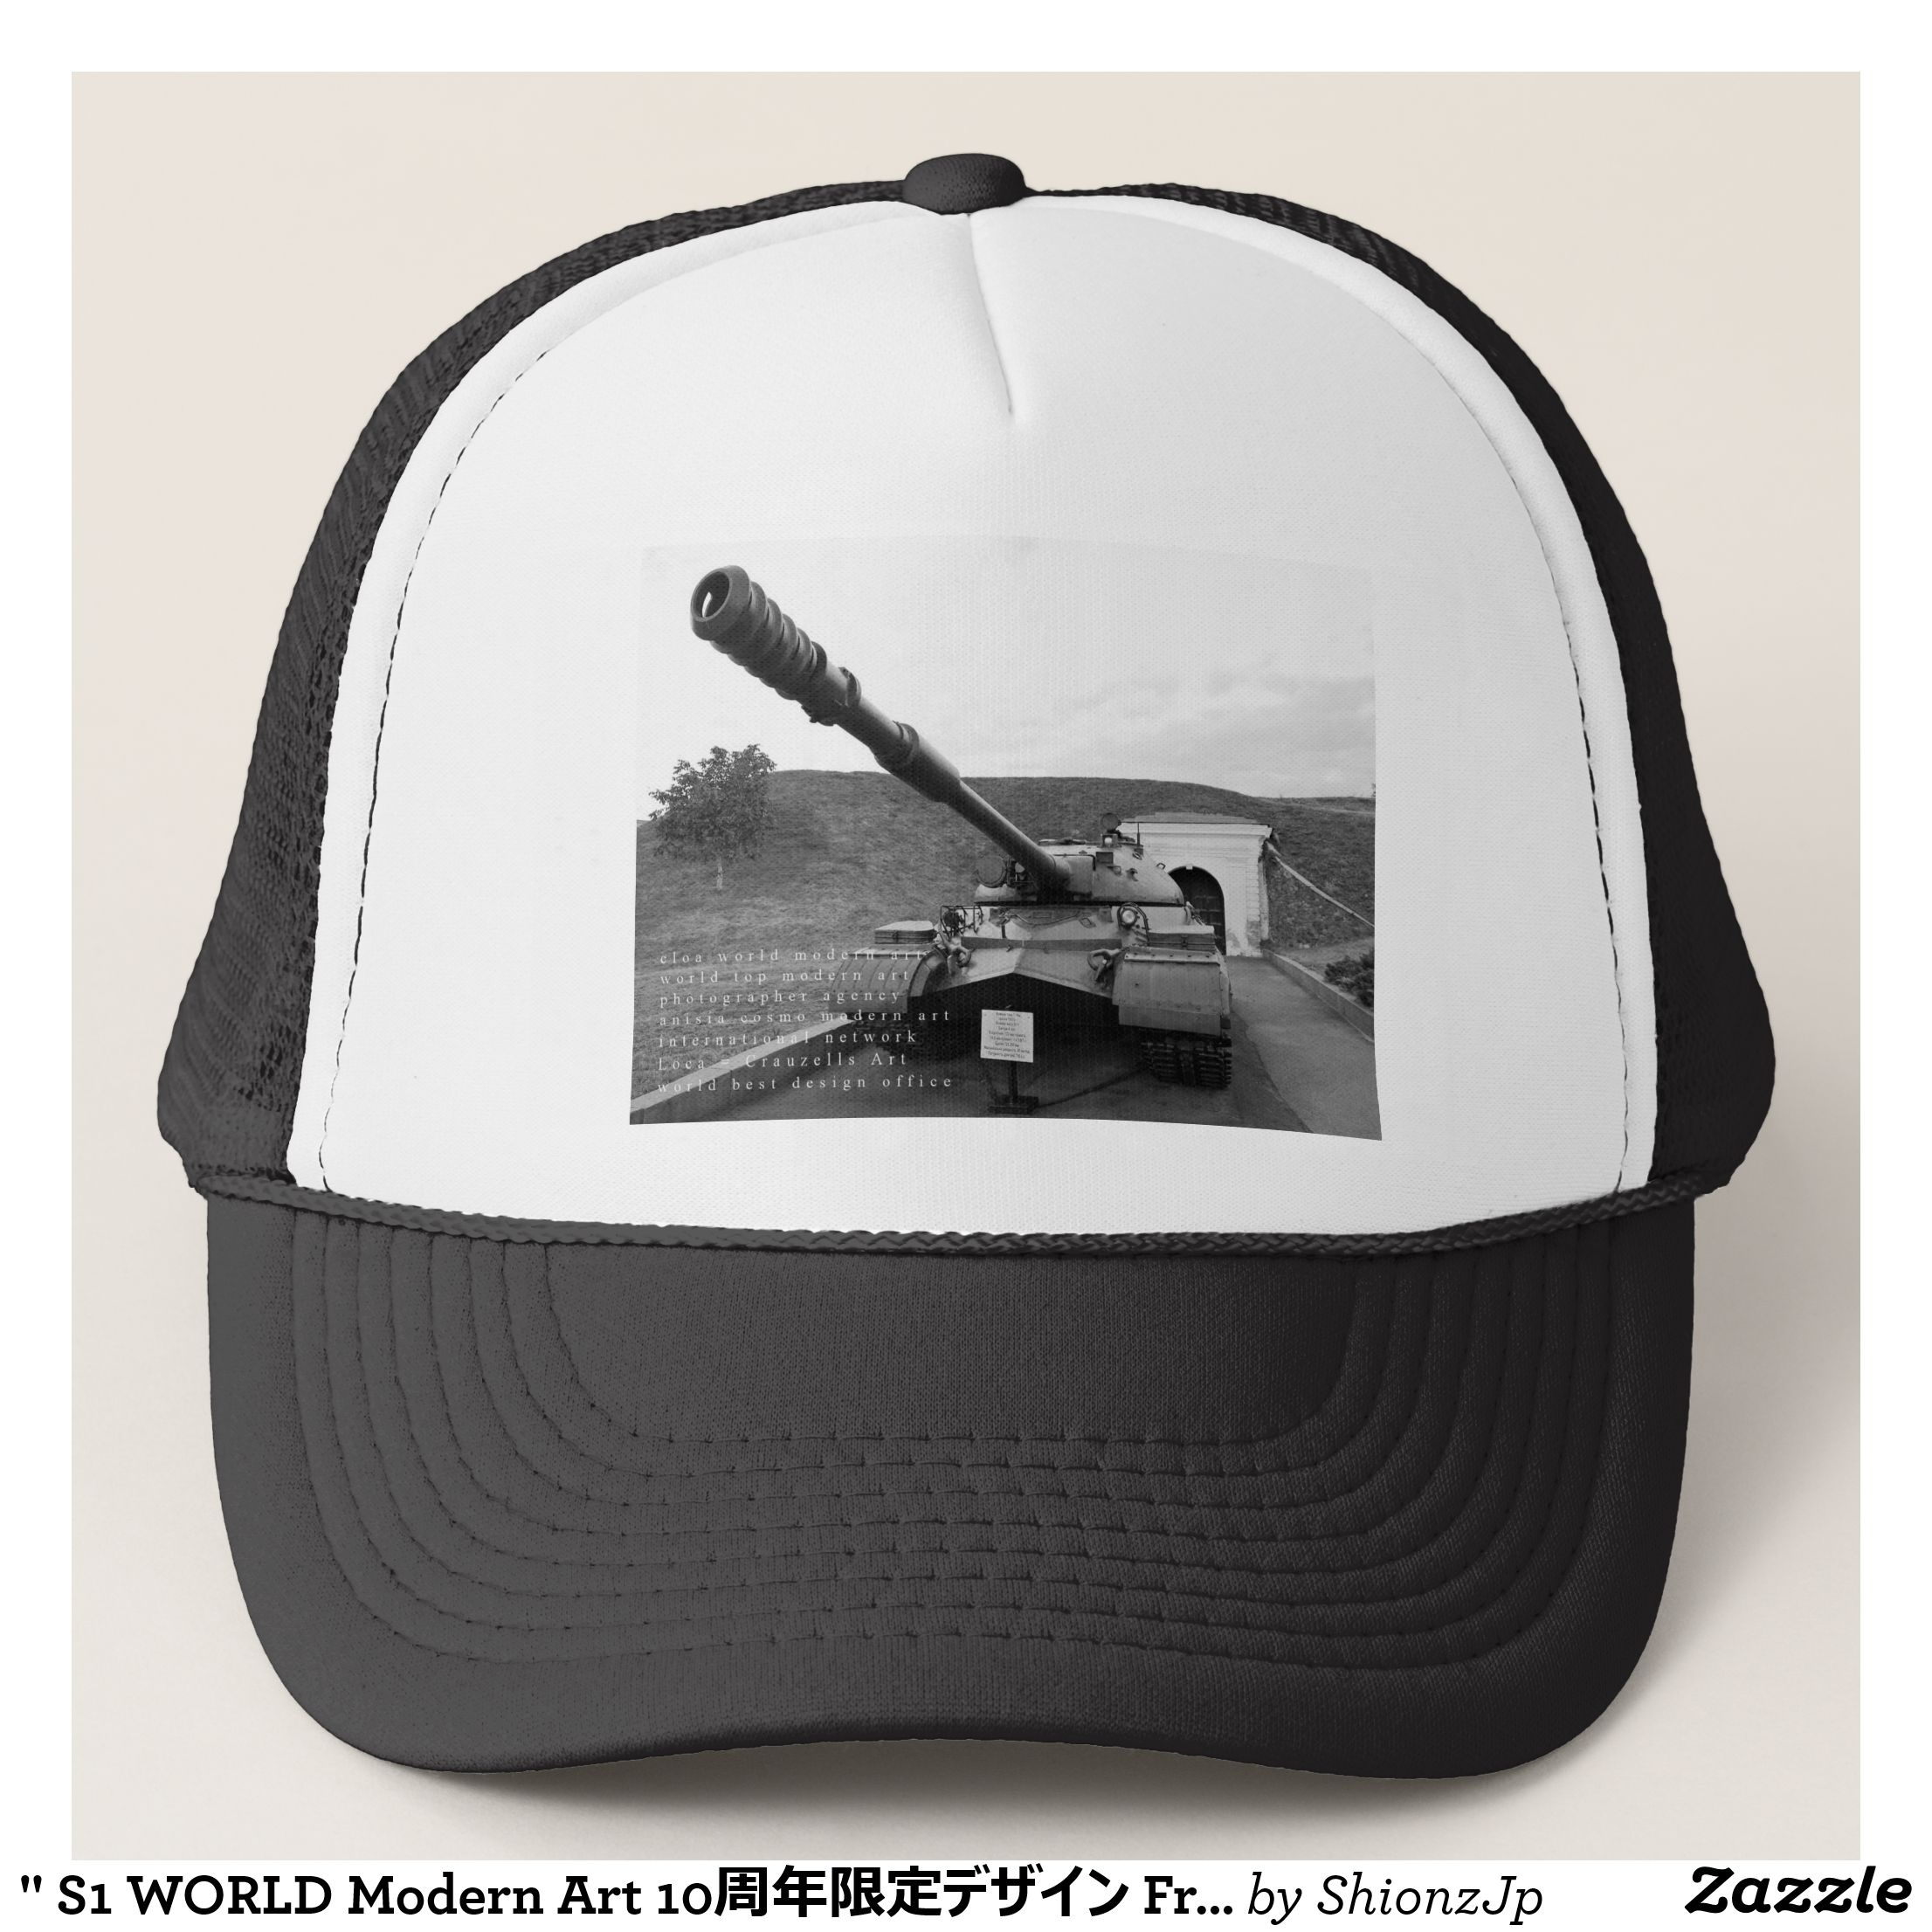 71975a71c7c S1 WORLD Modern Art 10th anniversary limited Trucker Hat - Fashionable Urban  And Outdoor Hunter Farmer. ""